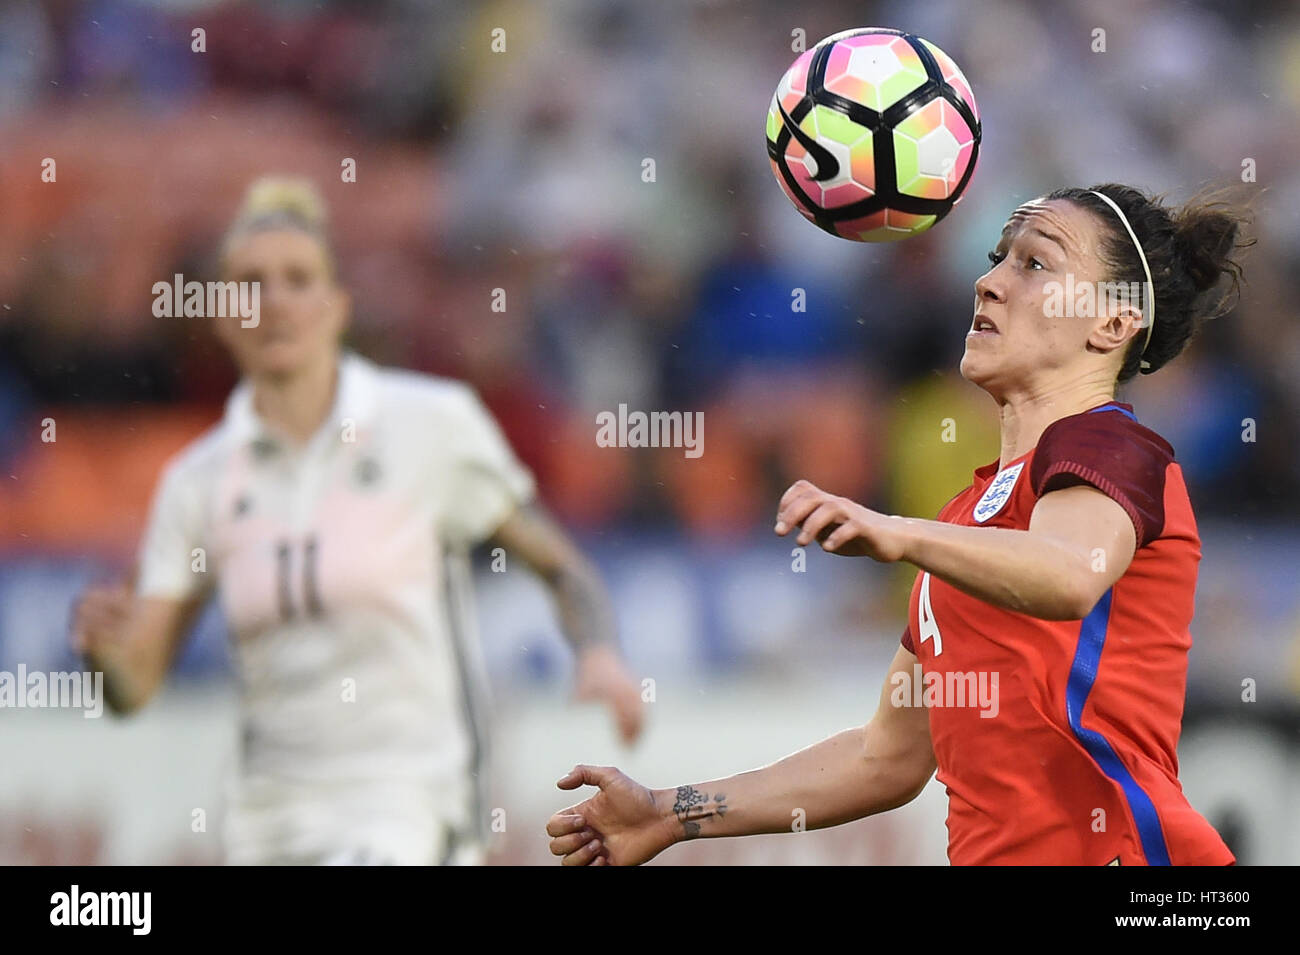 Washington DC, USA. 07Th Mar, 2017. Lucy l'Angleterre (4 bronze) conserve son œil sur la balle pendant le match Banque D'Images